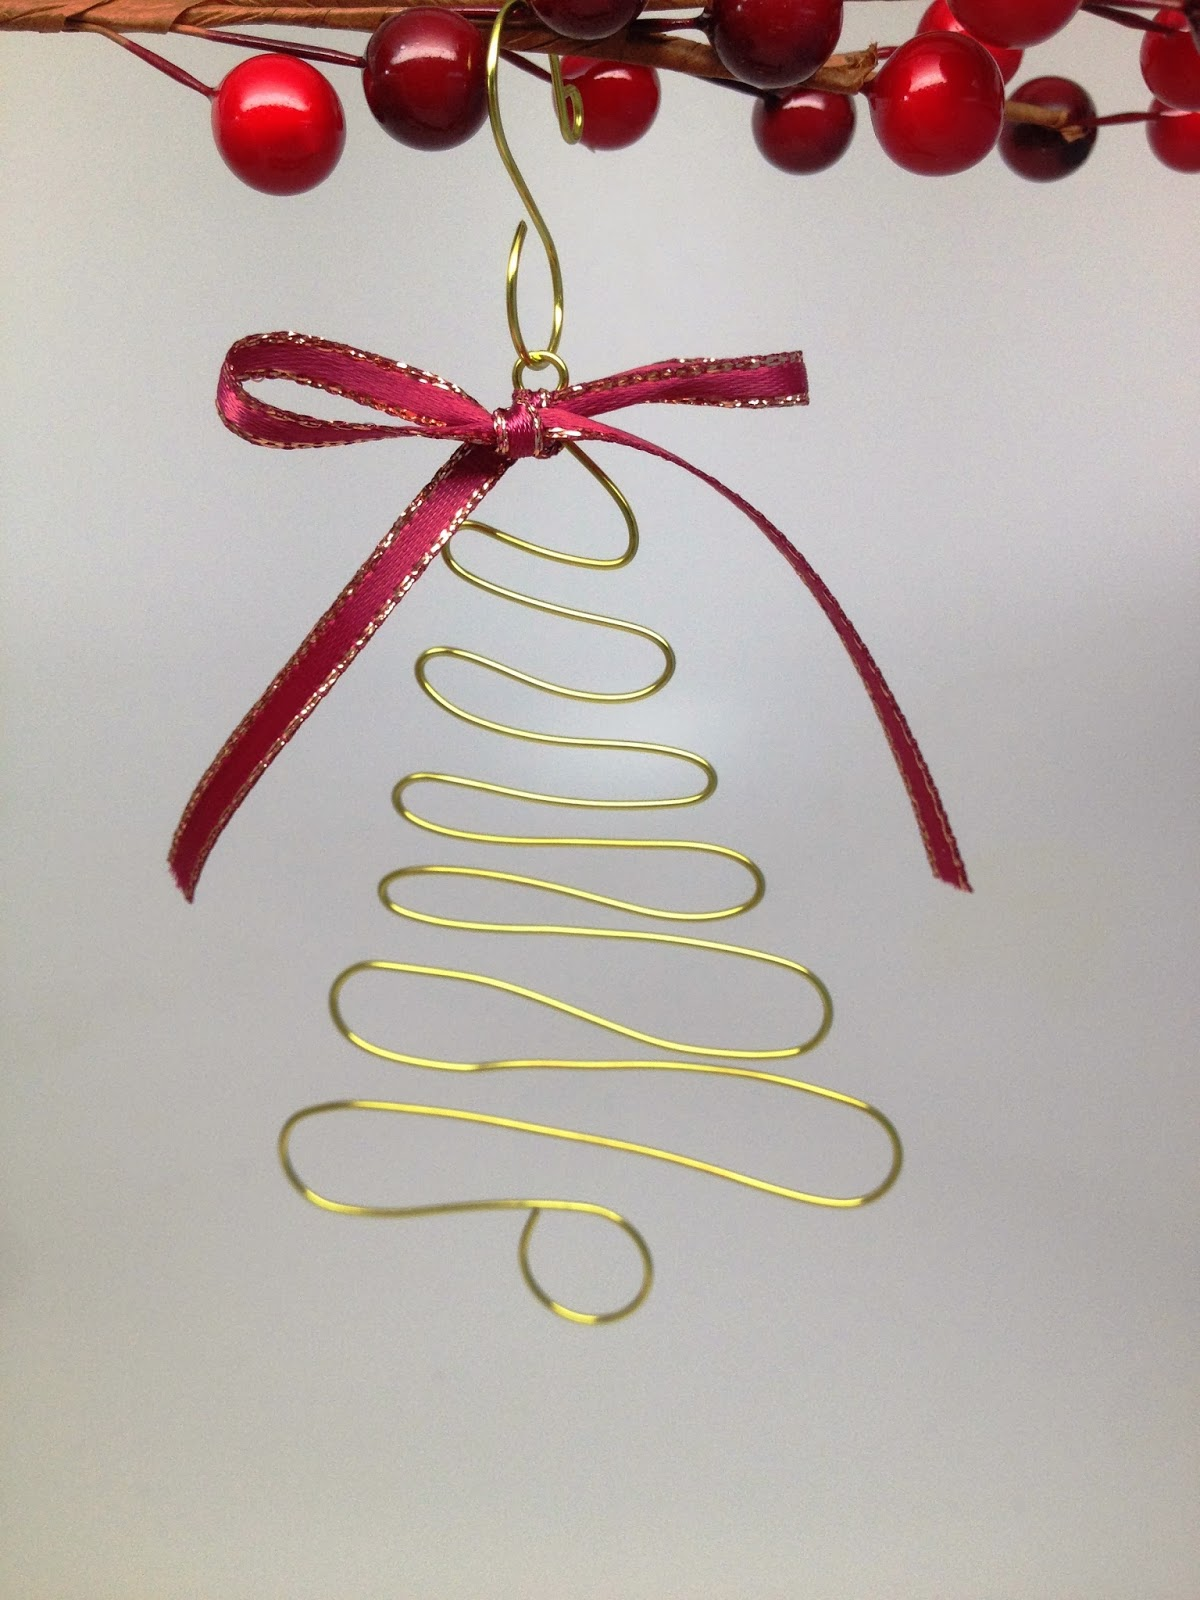 i posted a tree ornament pattern a little over a week ago ive been so flattered to see that well over 600 people have pinned it on pinterest wow - Wire Christmas Tree